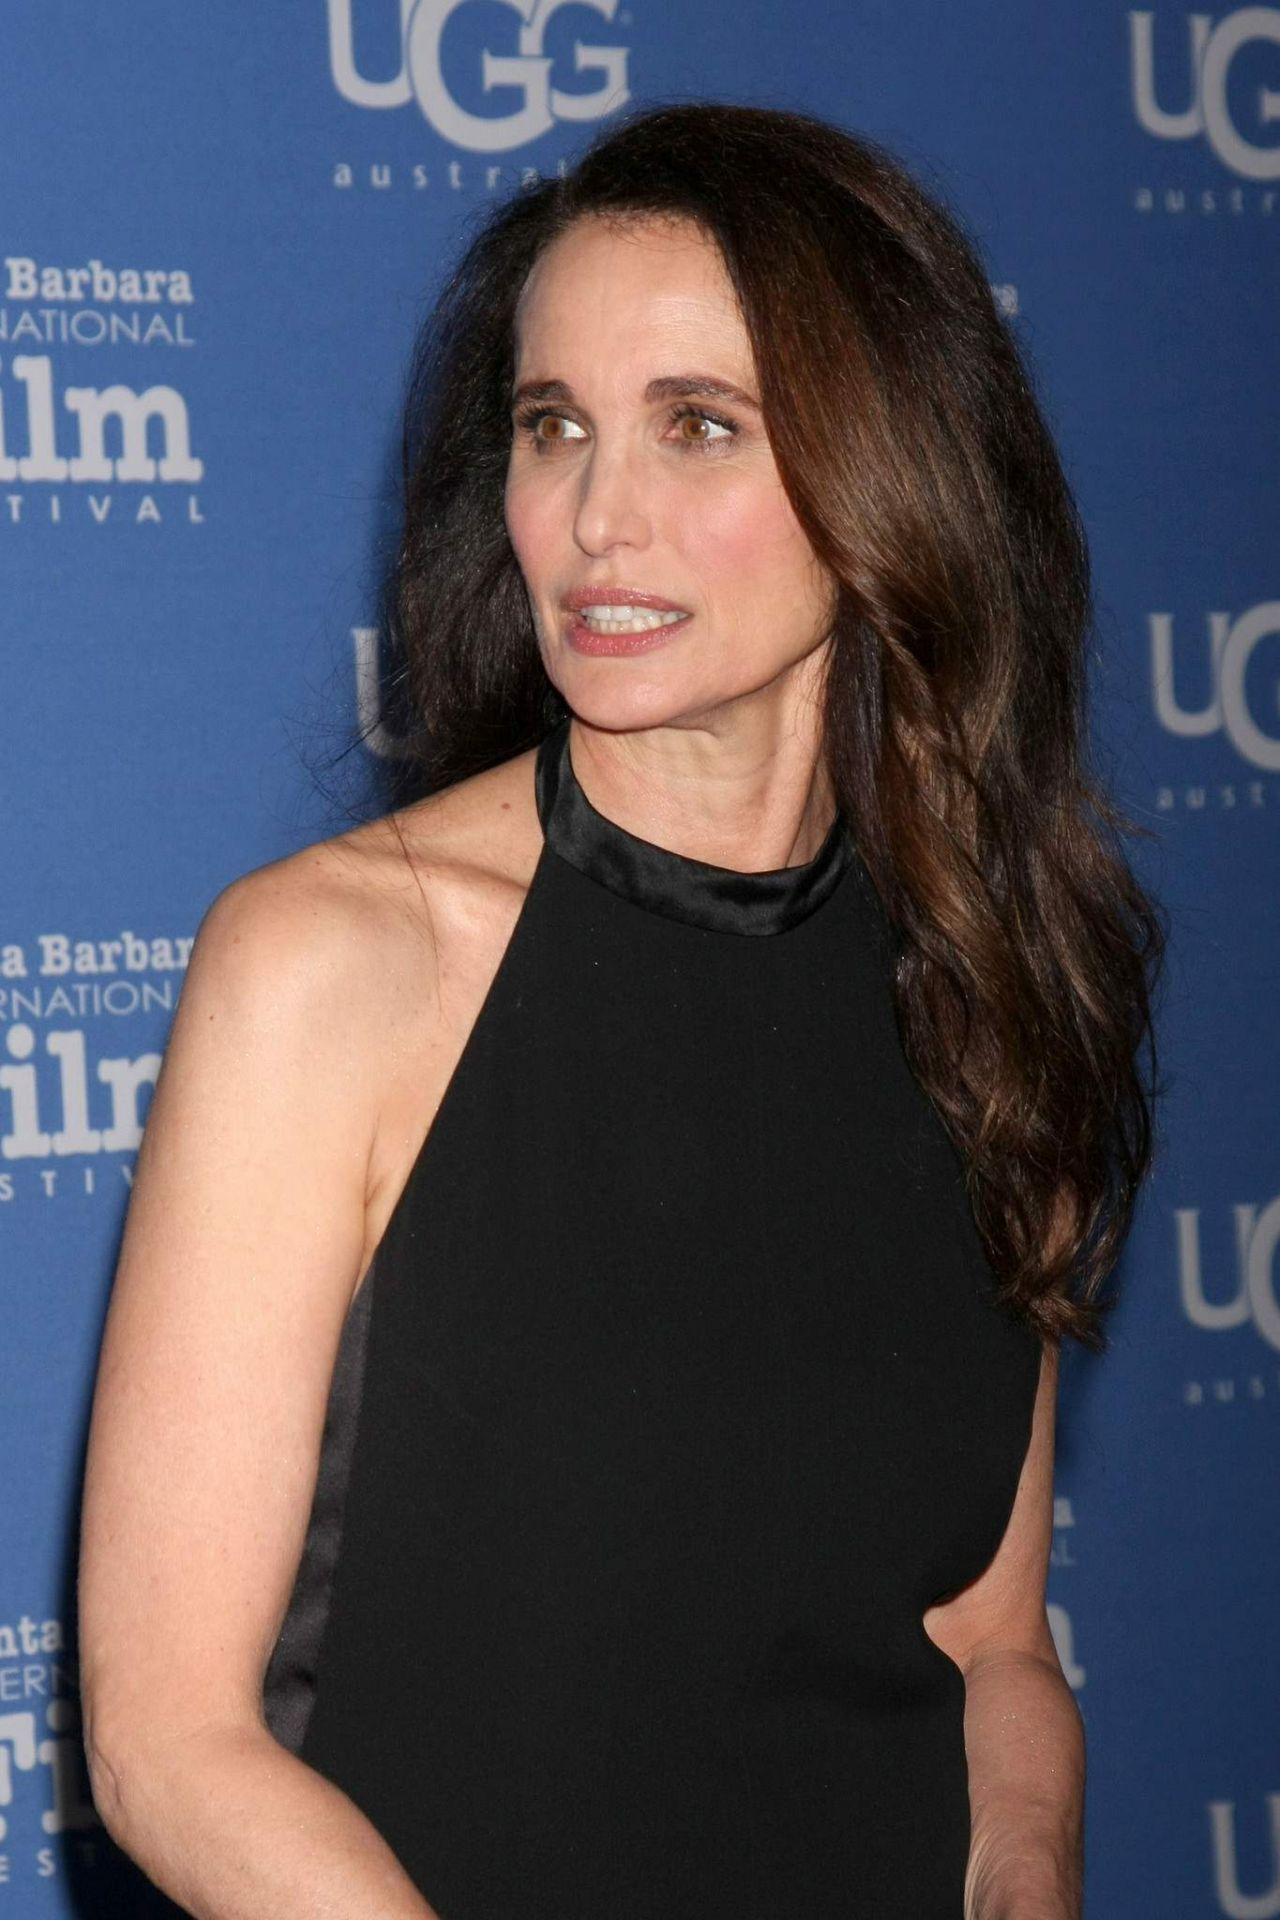 Movie Night Birthday Party Decorations as well Seasonal academy awards also Countdown To Bring Out The Gutsy In You Event further Film Strip besides Andie Macdowell 2015 Santa Barbara Iff 266733. on oscar awards ticket